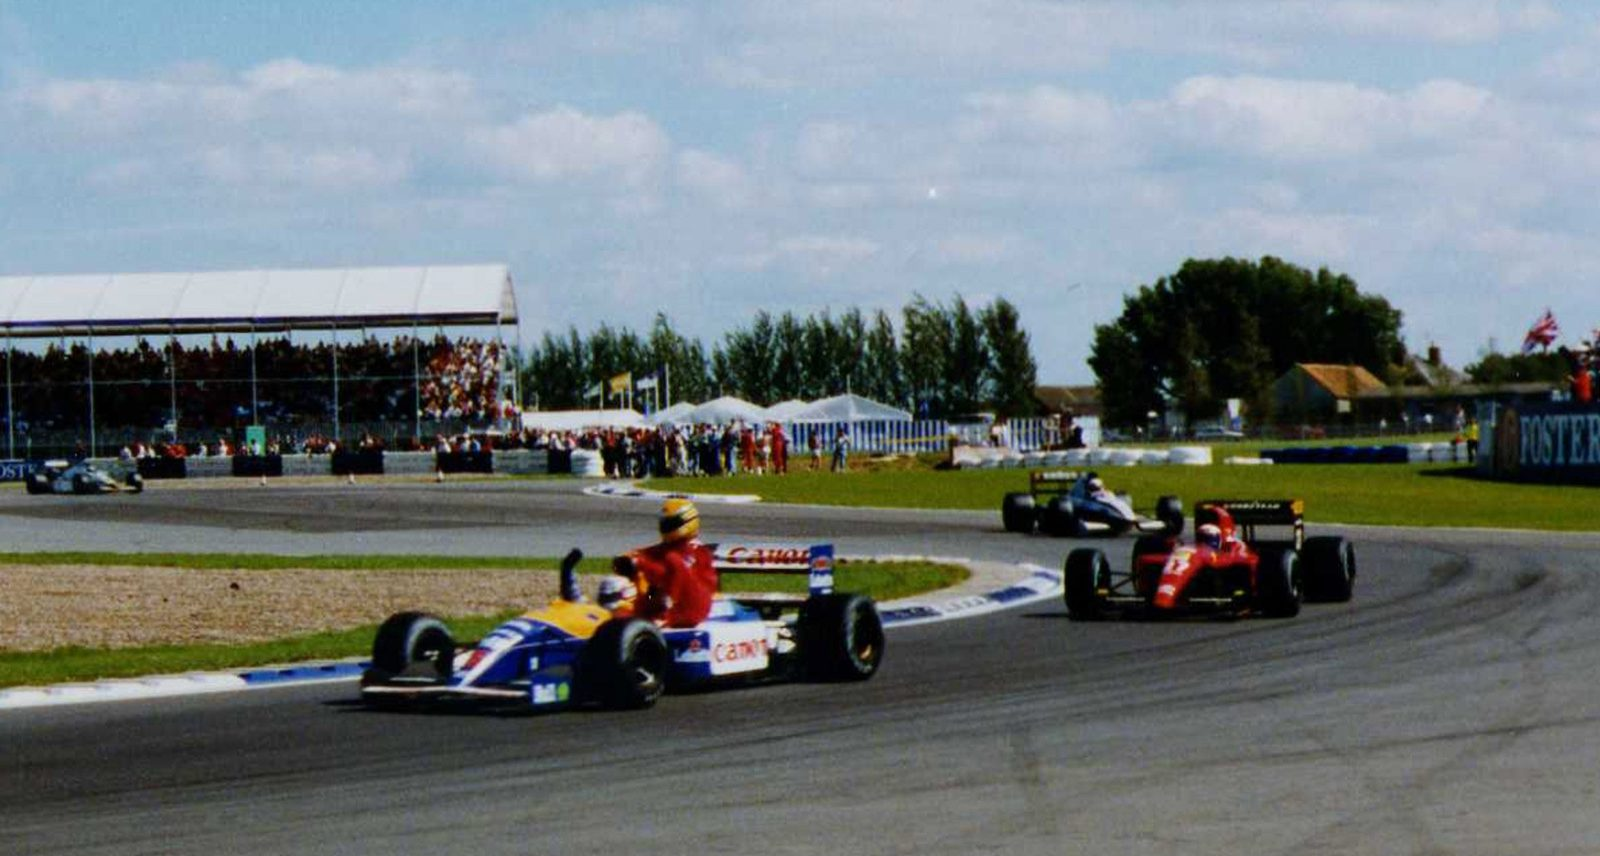 A Definitive Ranking of the World's Top Racetracks